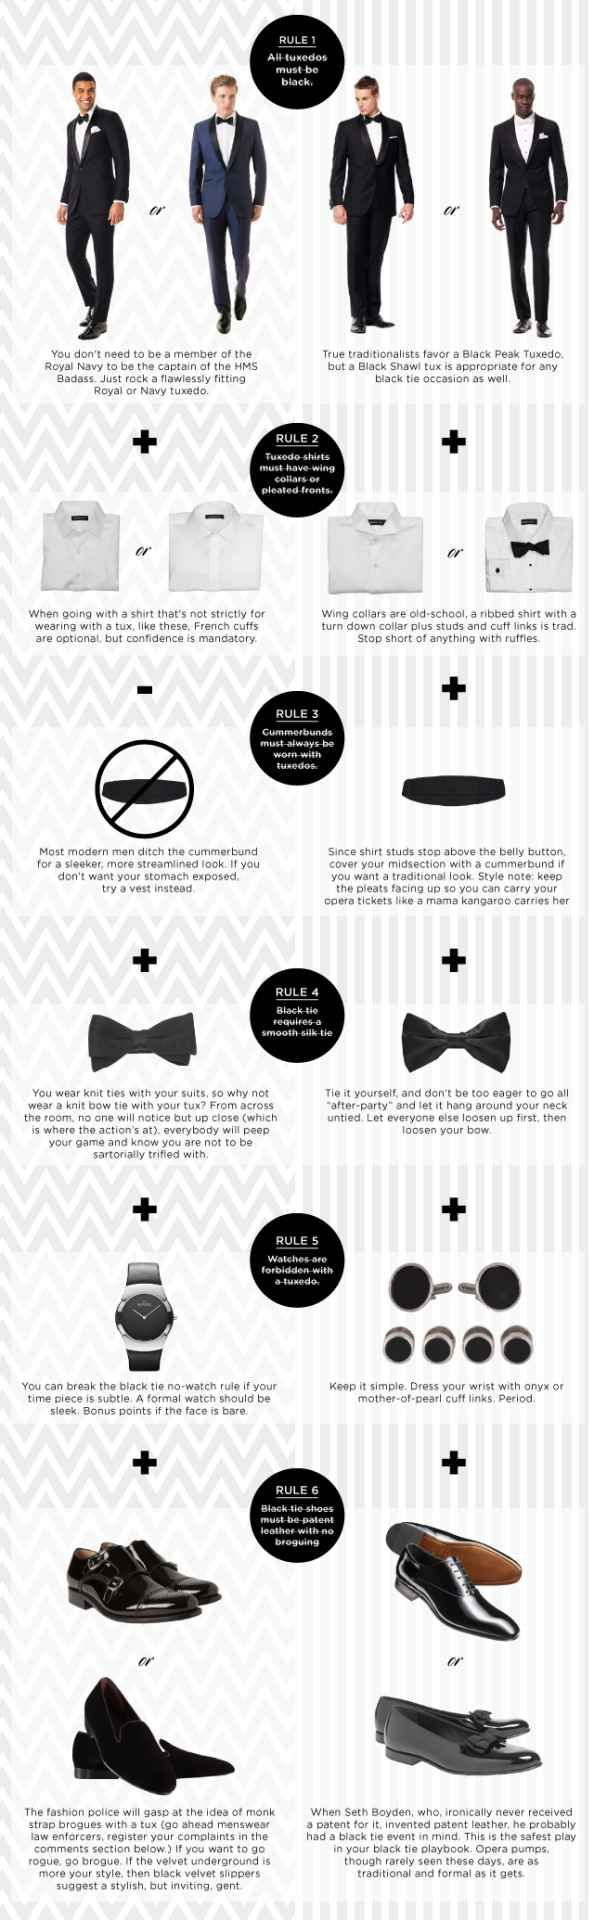 But wait! Maybe you're in the market for a tux? Consider these rules…that you should break.